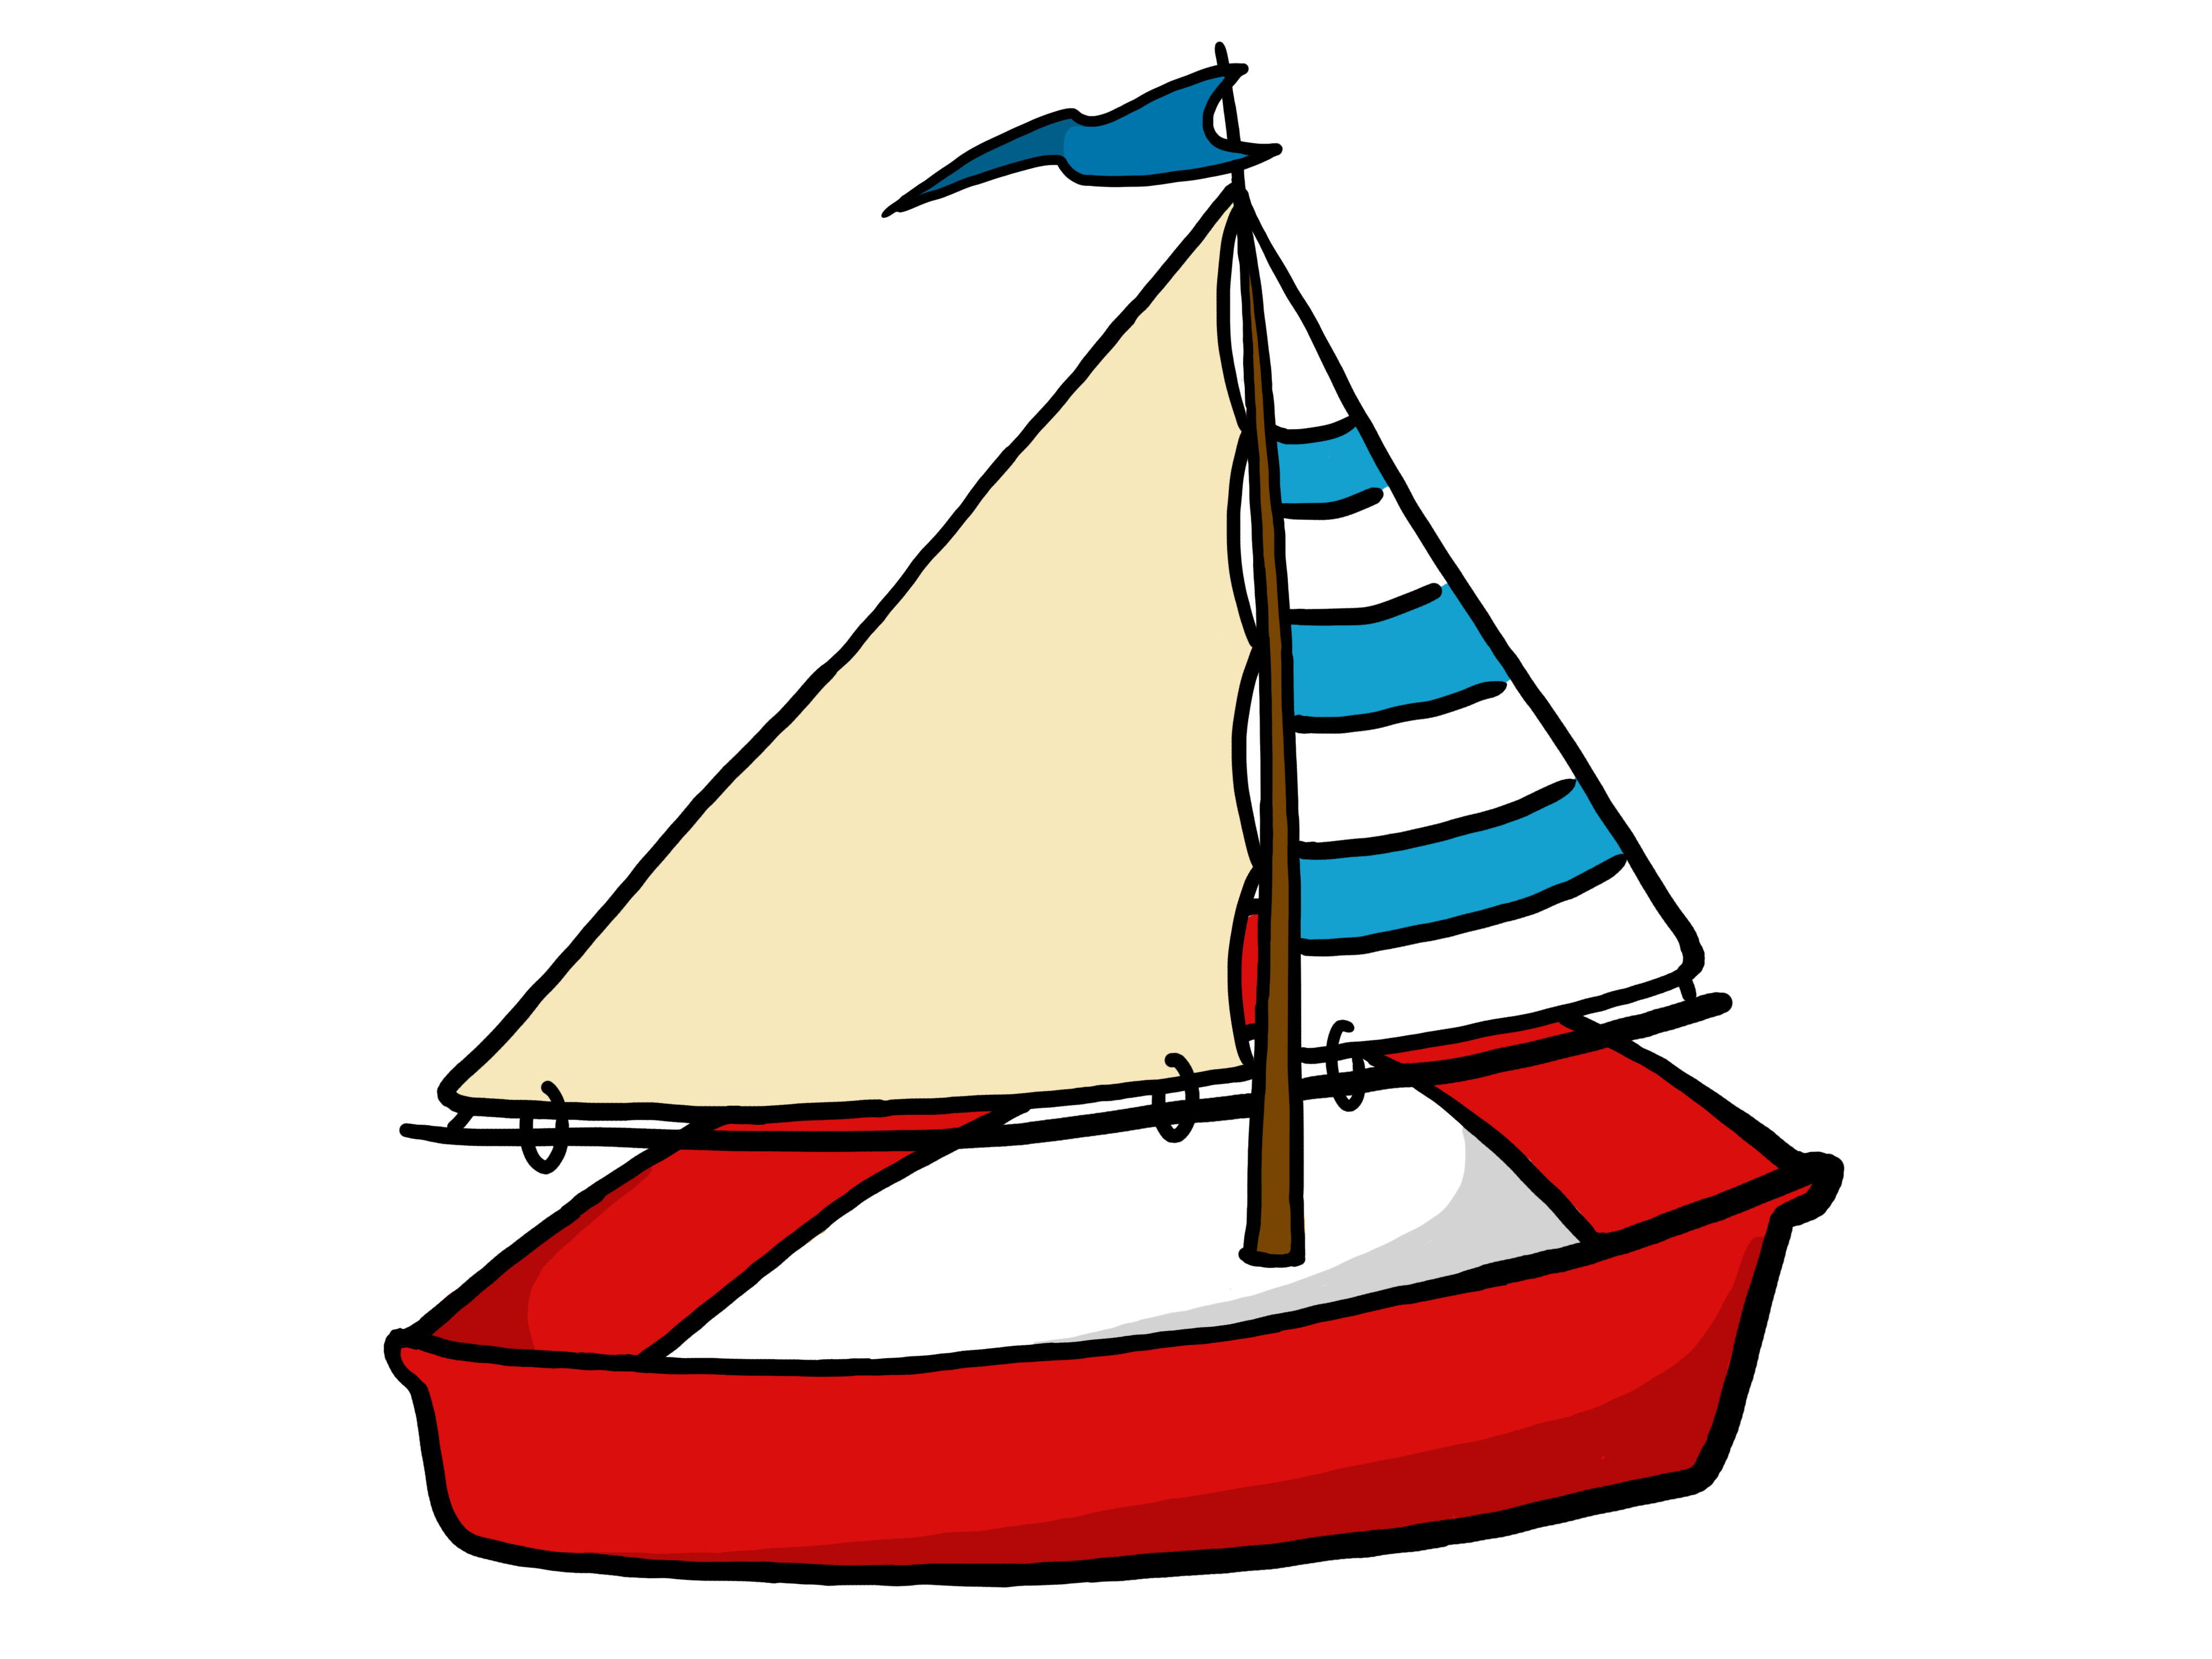 Boat clipart #3, Download drawings